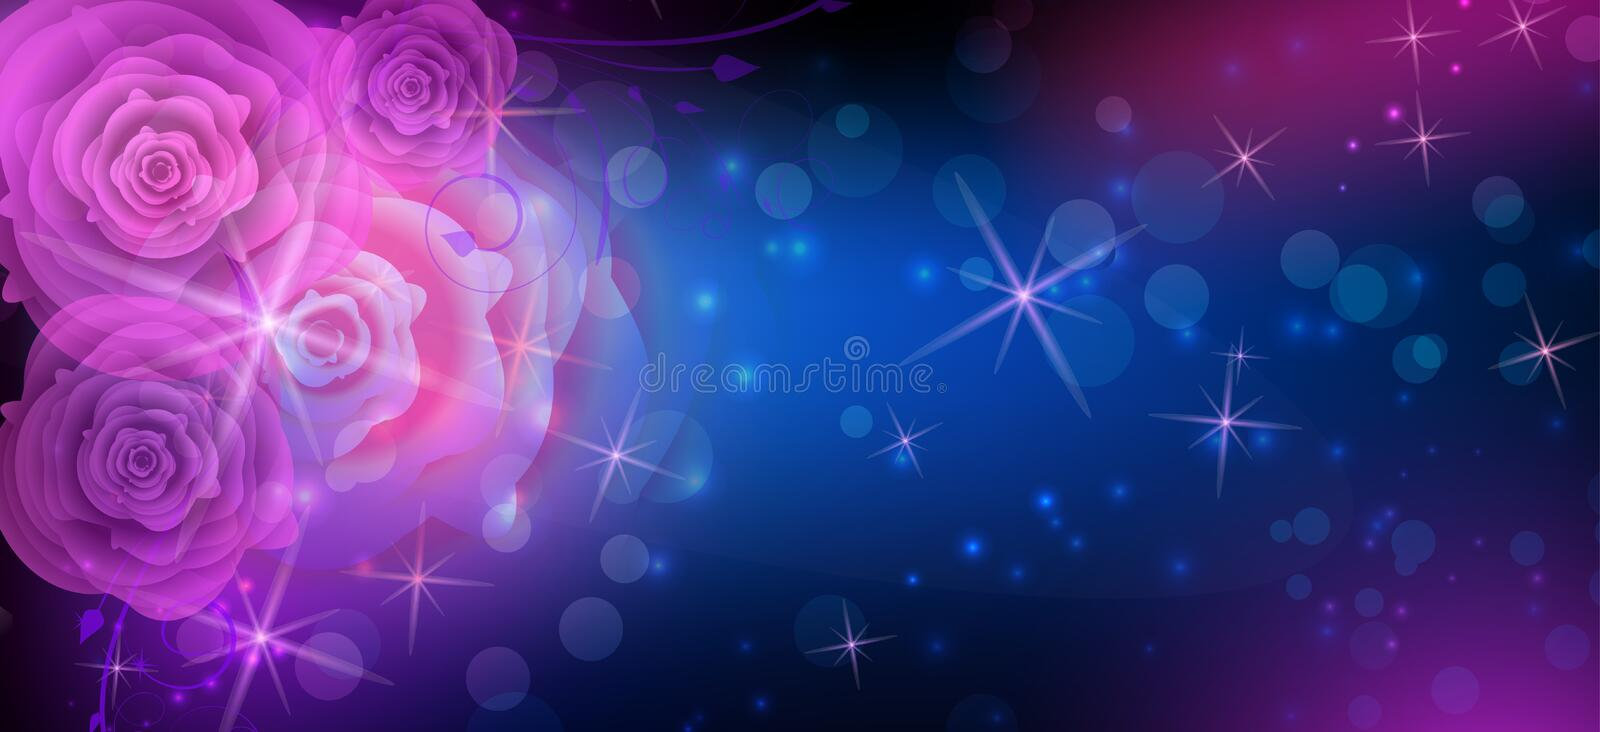 Abstract roses dark background. Dark background in blue and purple colors with abstract roses stock illustration